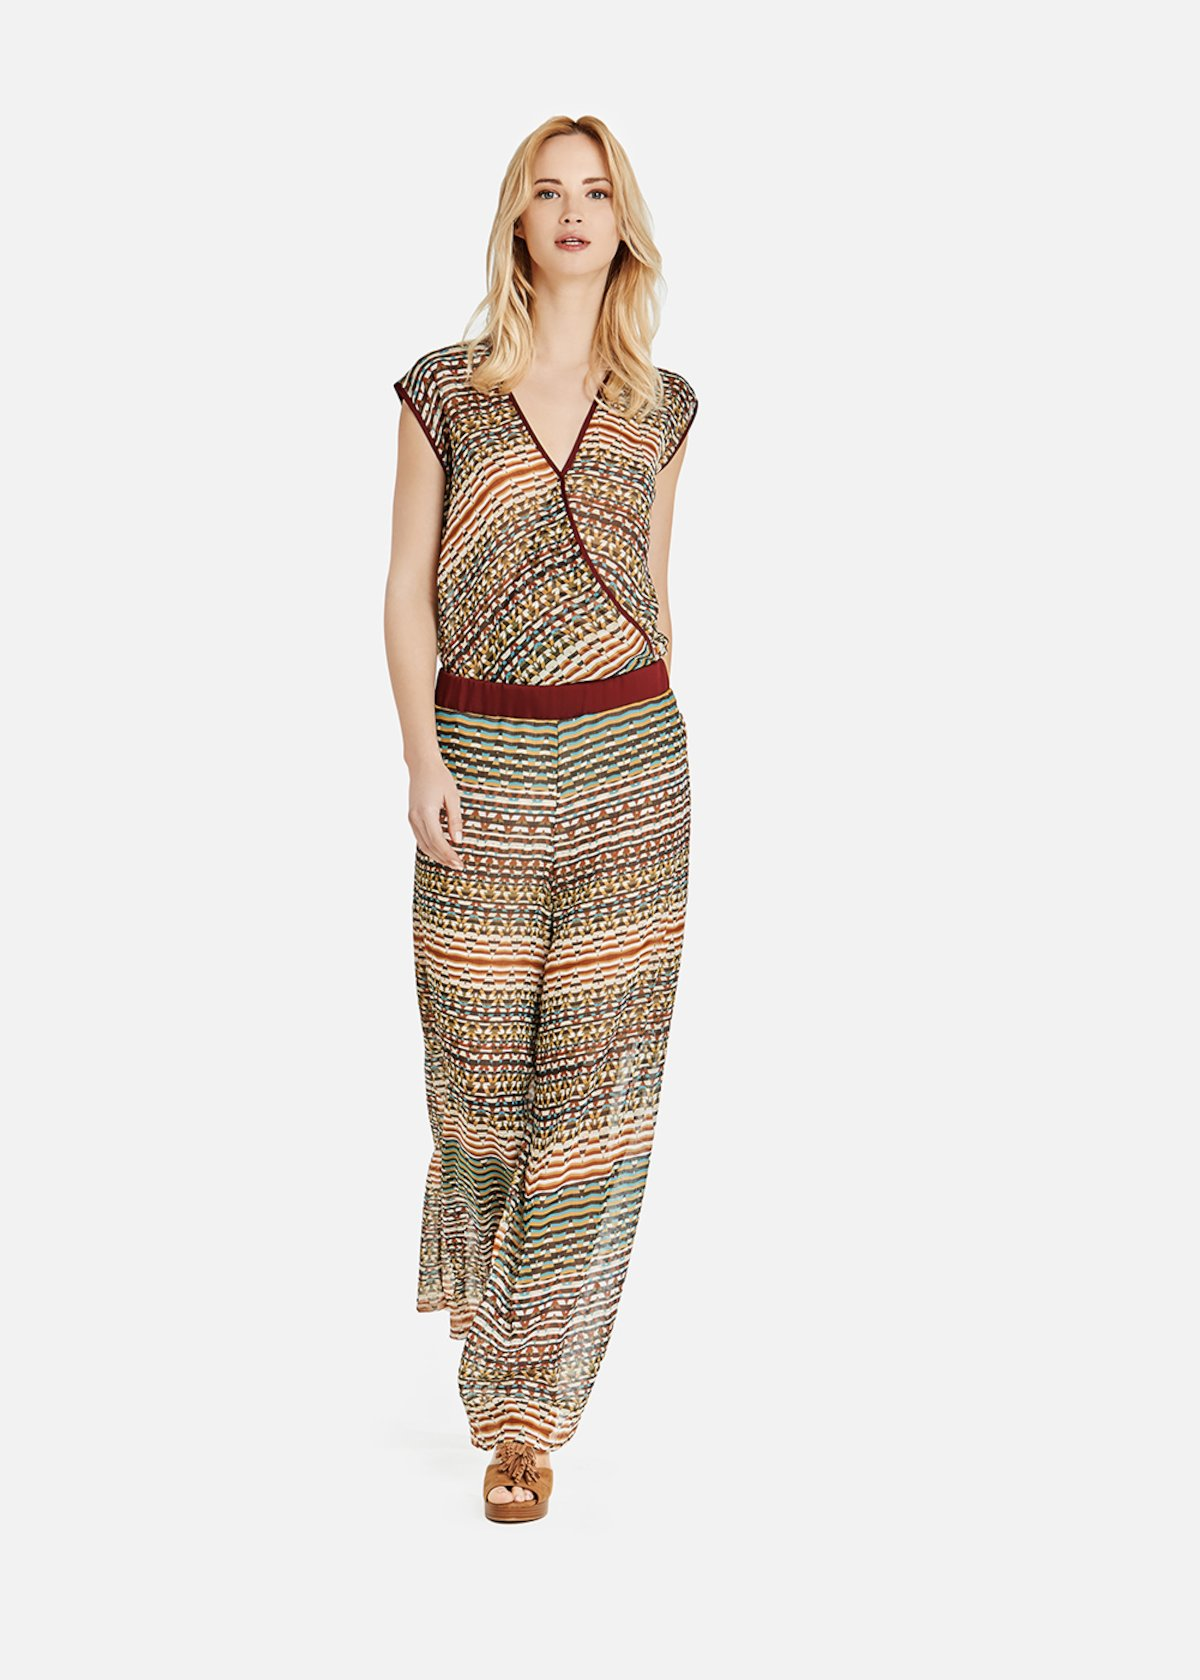 Paul pants with teheran pattern - Alga / Argilla Fantasia